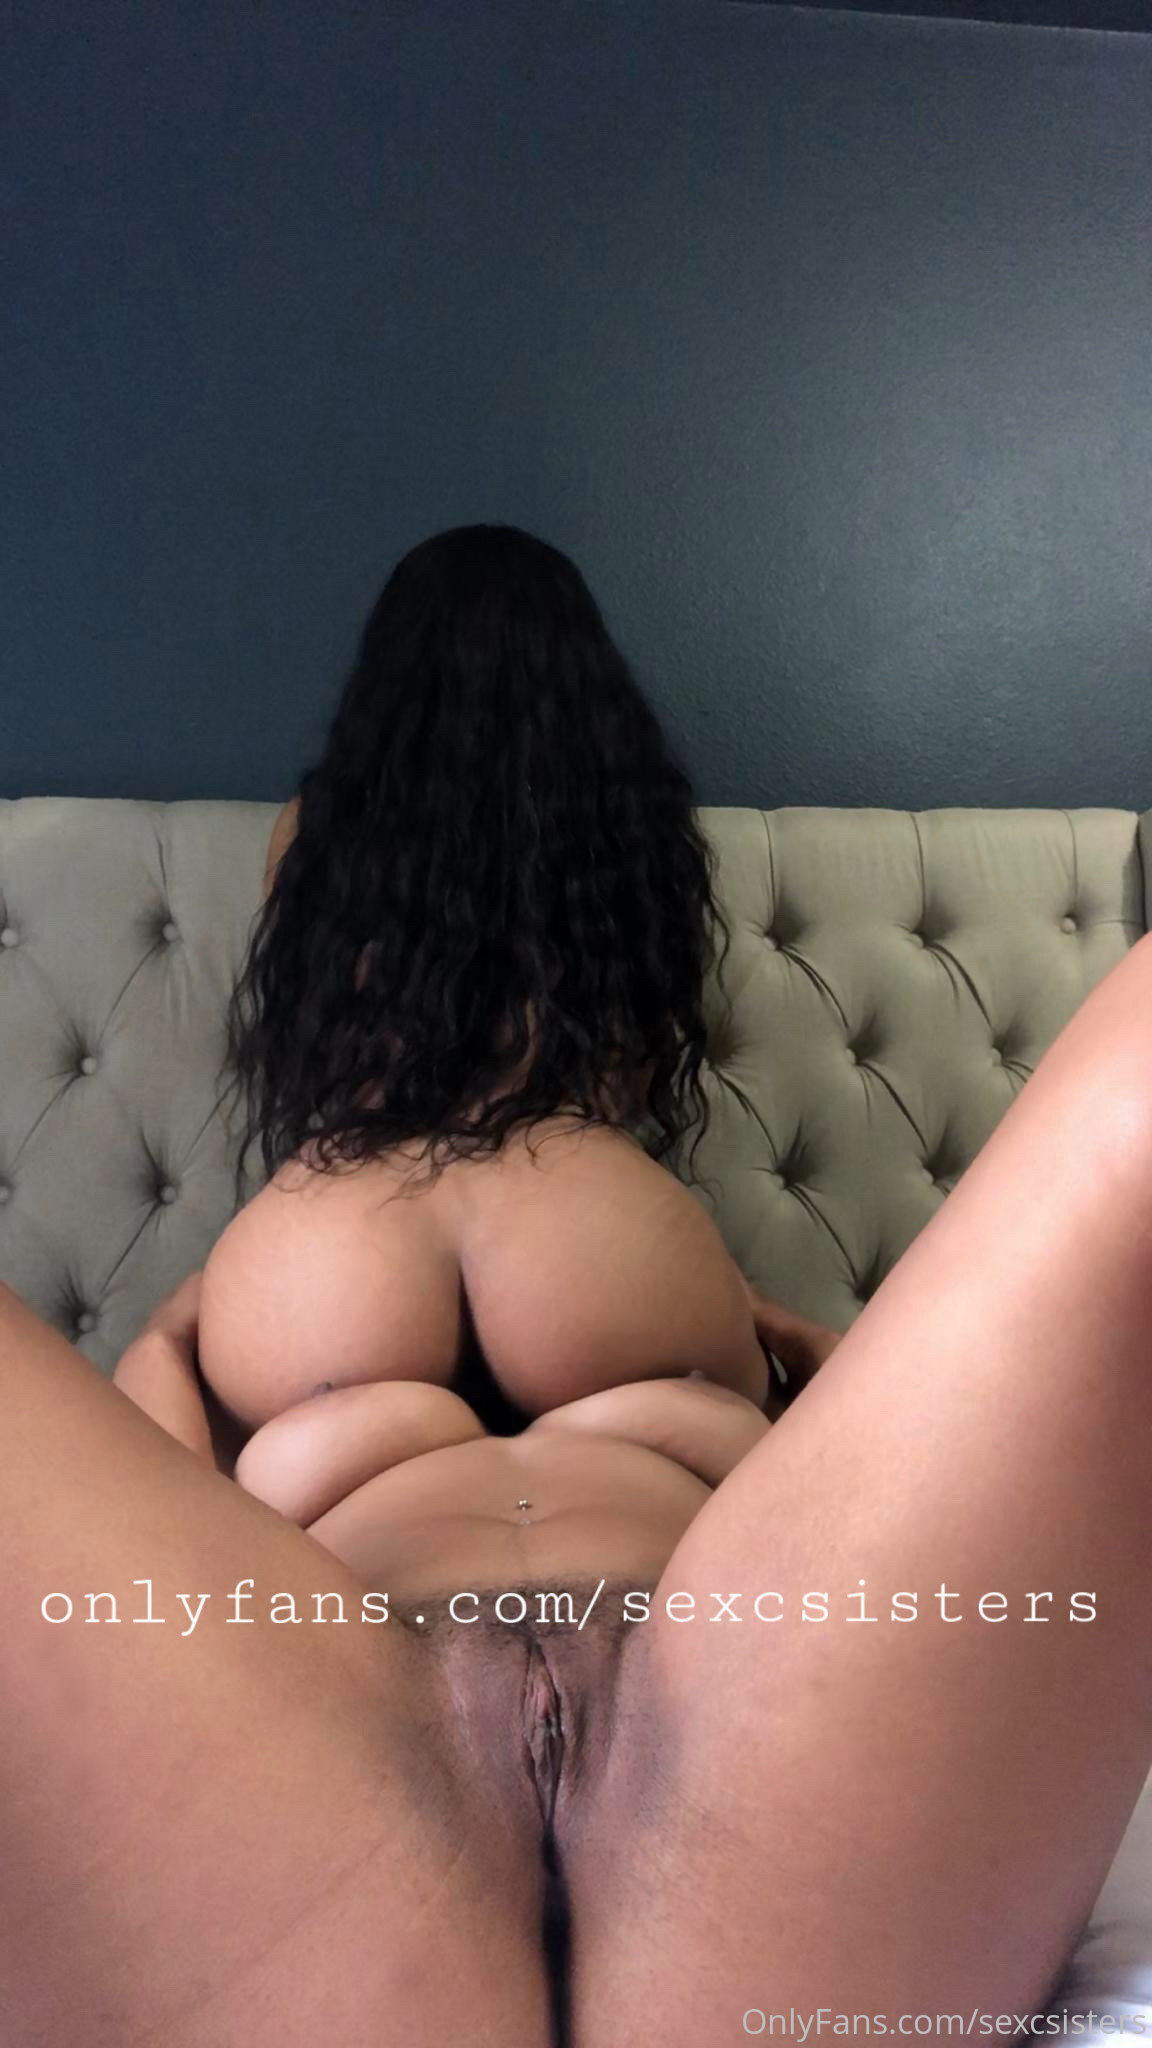 Molly And Mia, Sexcsisters, Onlyfans 0028